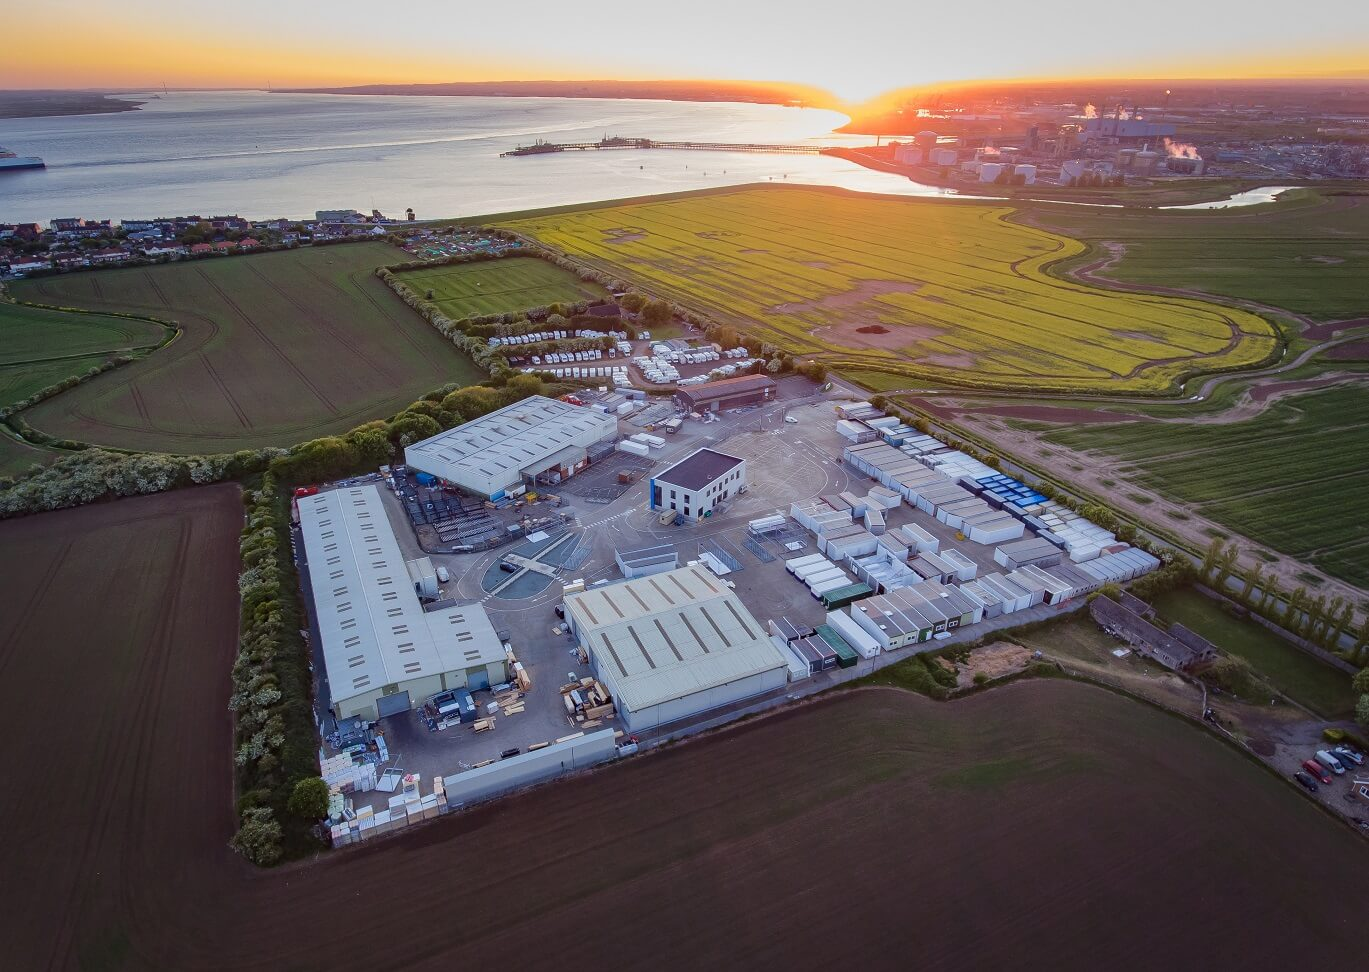 An aerial view of Integra Buildings' site at Paull, close to the Humber estuary, with the land earmarked for expansion in the foreground (Photo Craig Marriott)